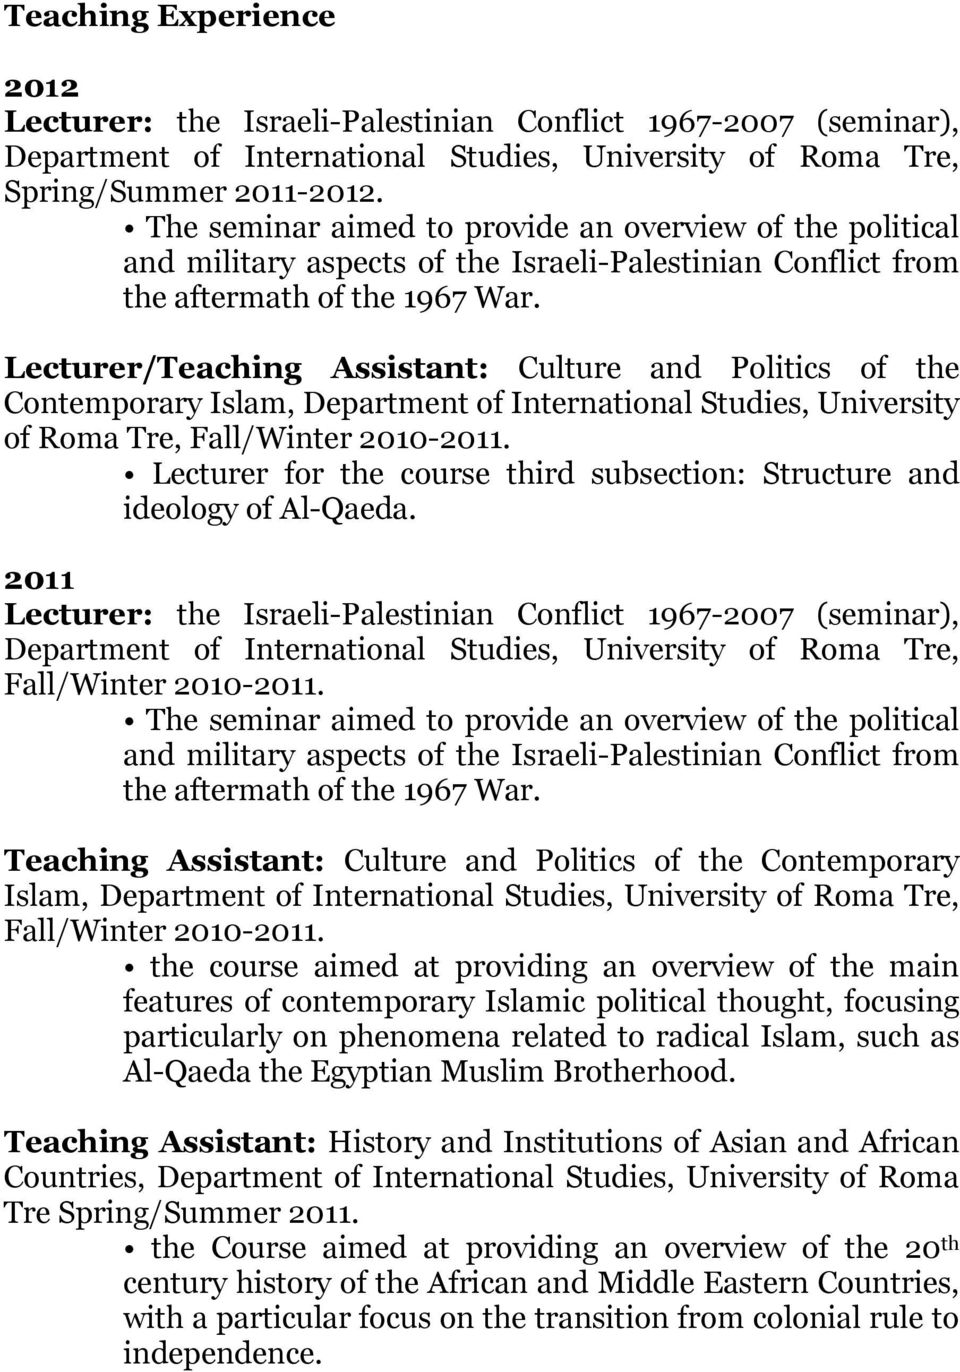 Lecturer/Teaching Assistant: Culture and Politics of the Contemporary Islam, Department of International Studies, University of Roma Tre, Fall/Winter 2010-2011.